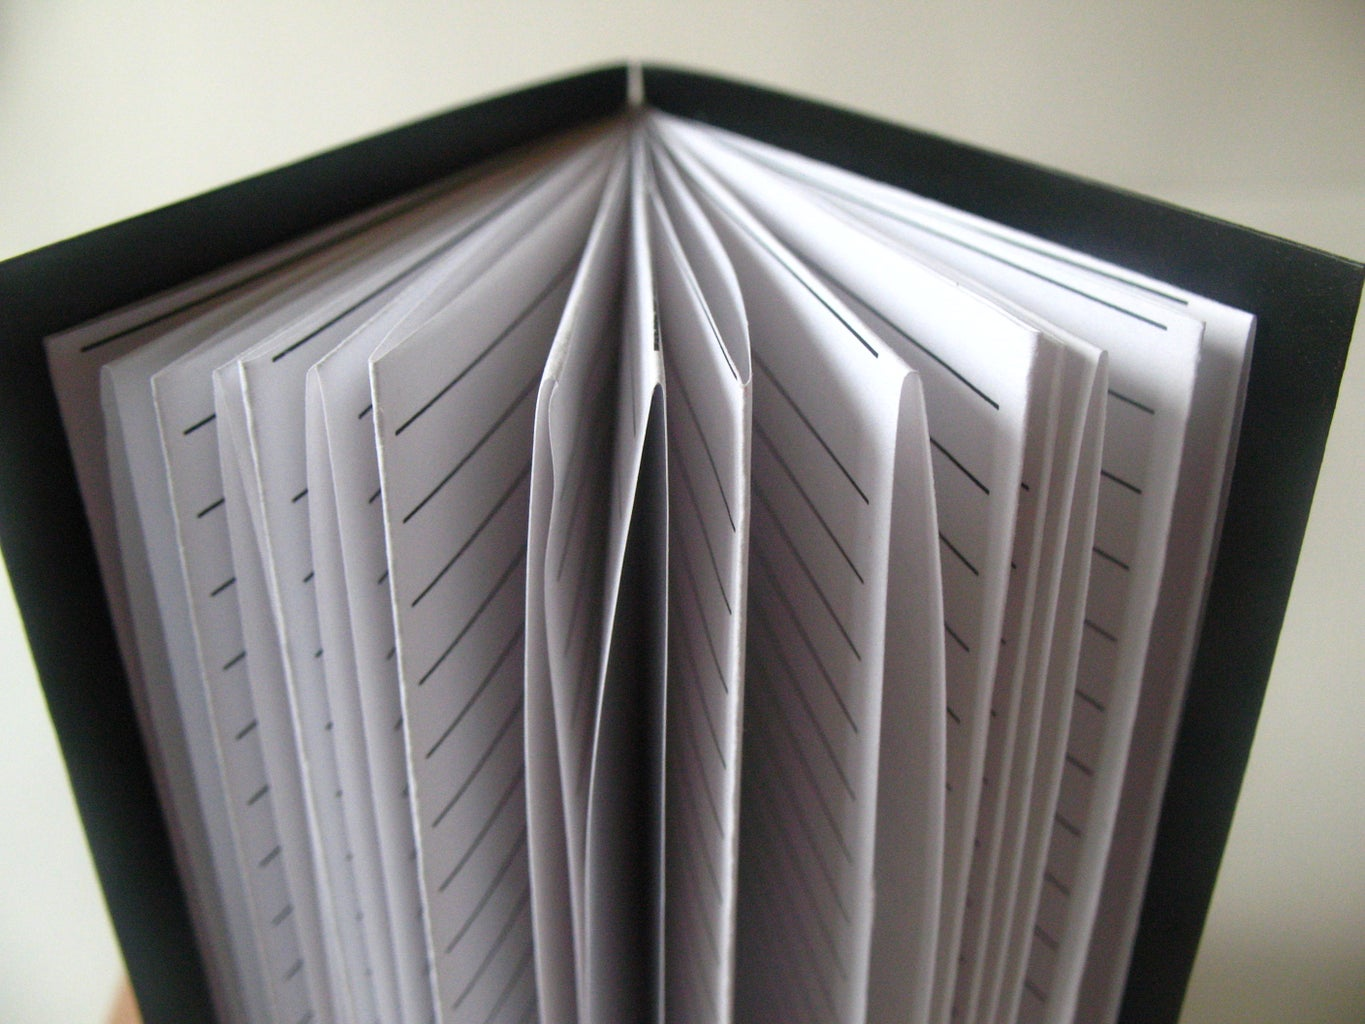 Voila! 32-pages Wrapped in a Cover